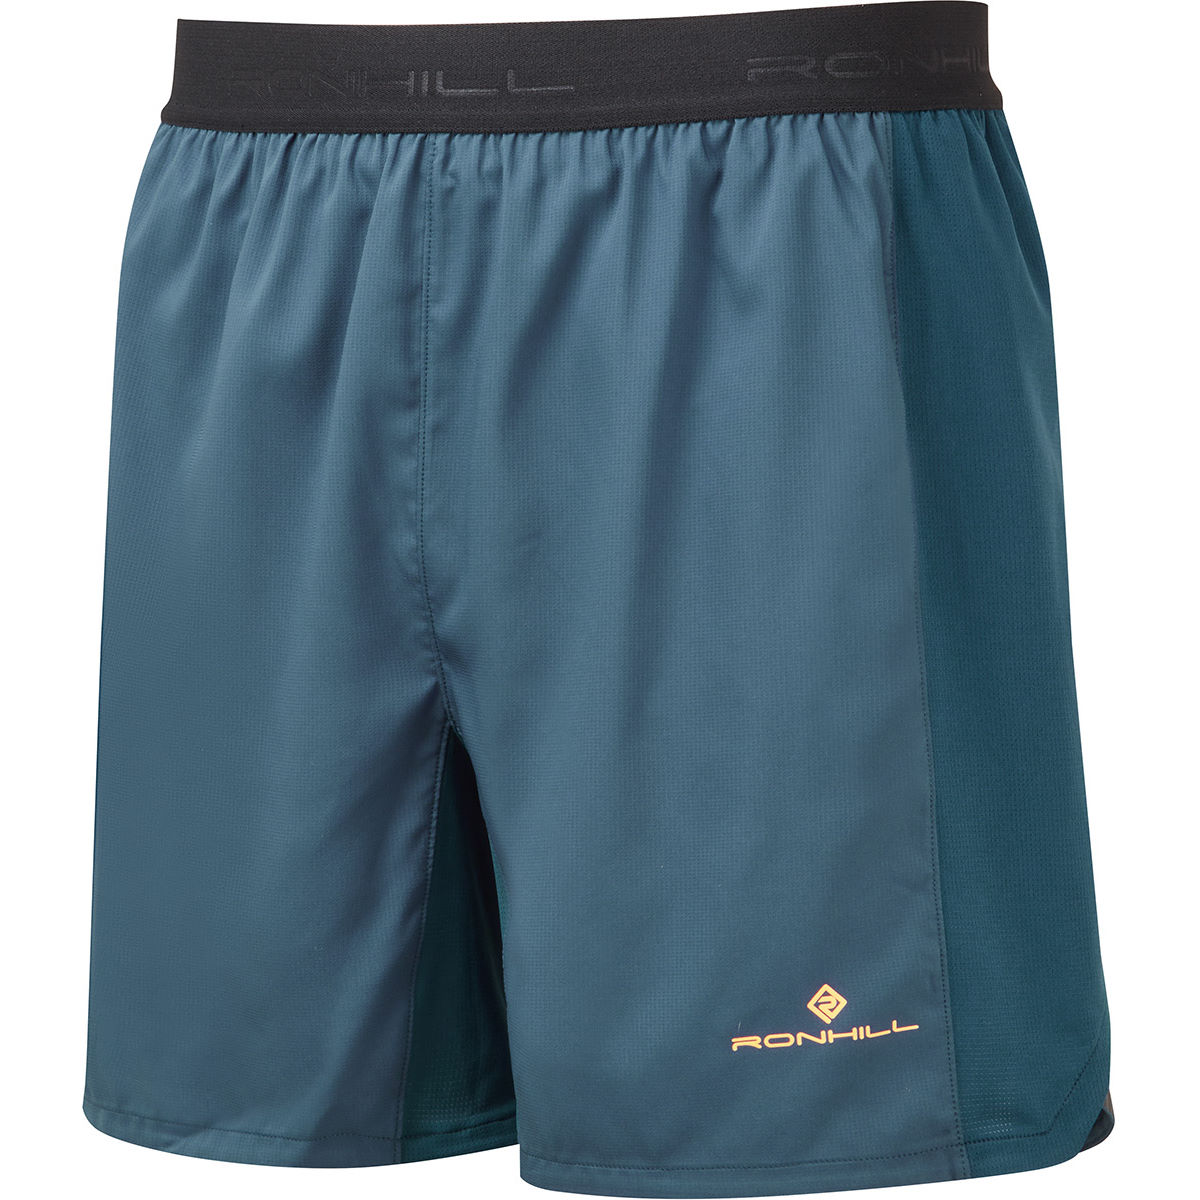 Ronhill Tech Revive 5 Running Shorts - Extra Large  Shorts